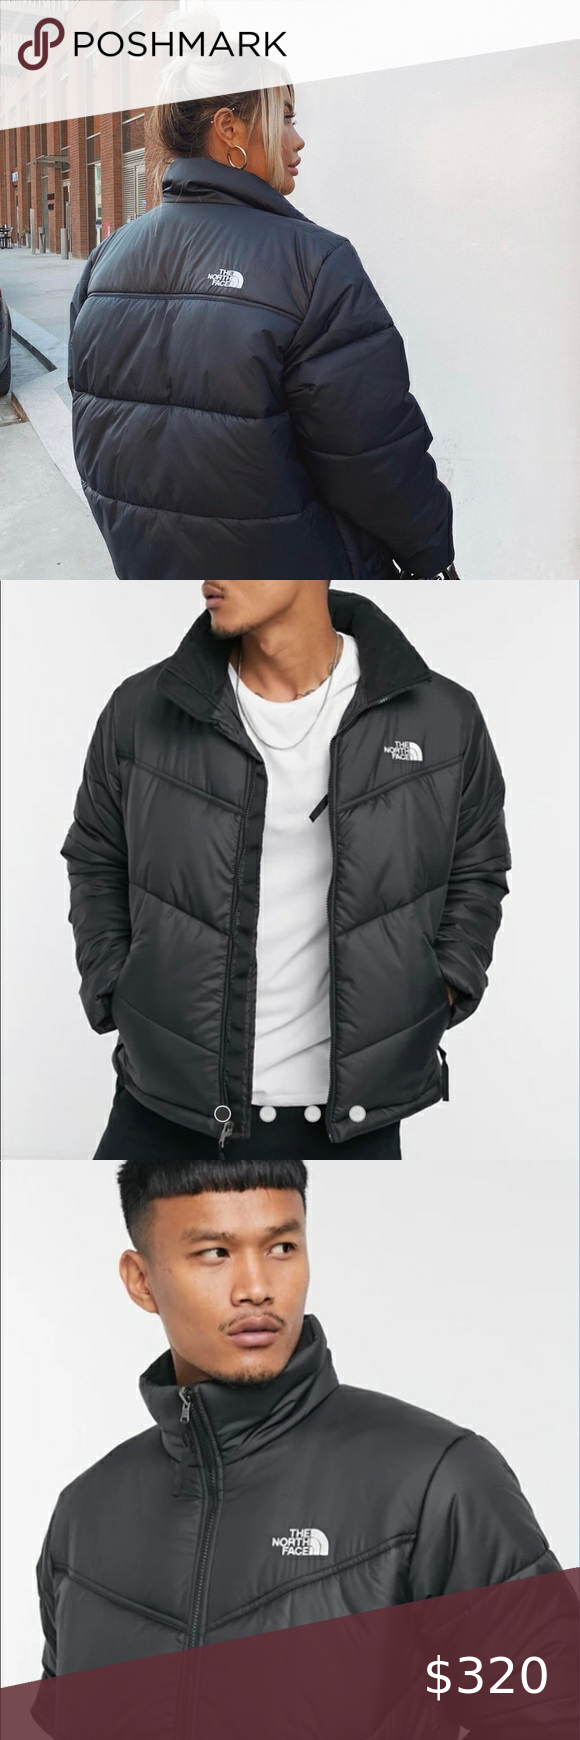 The North Face Saikuru Jacket In 2021 North Face Jacket Mens North Face Thermoball Jacket Winter Jacket North Face [ 1740 x 580 Pixel ]